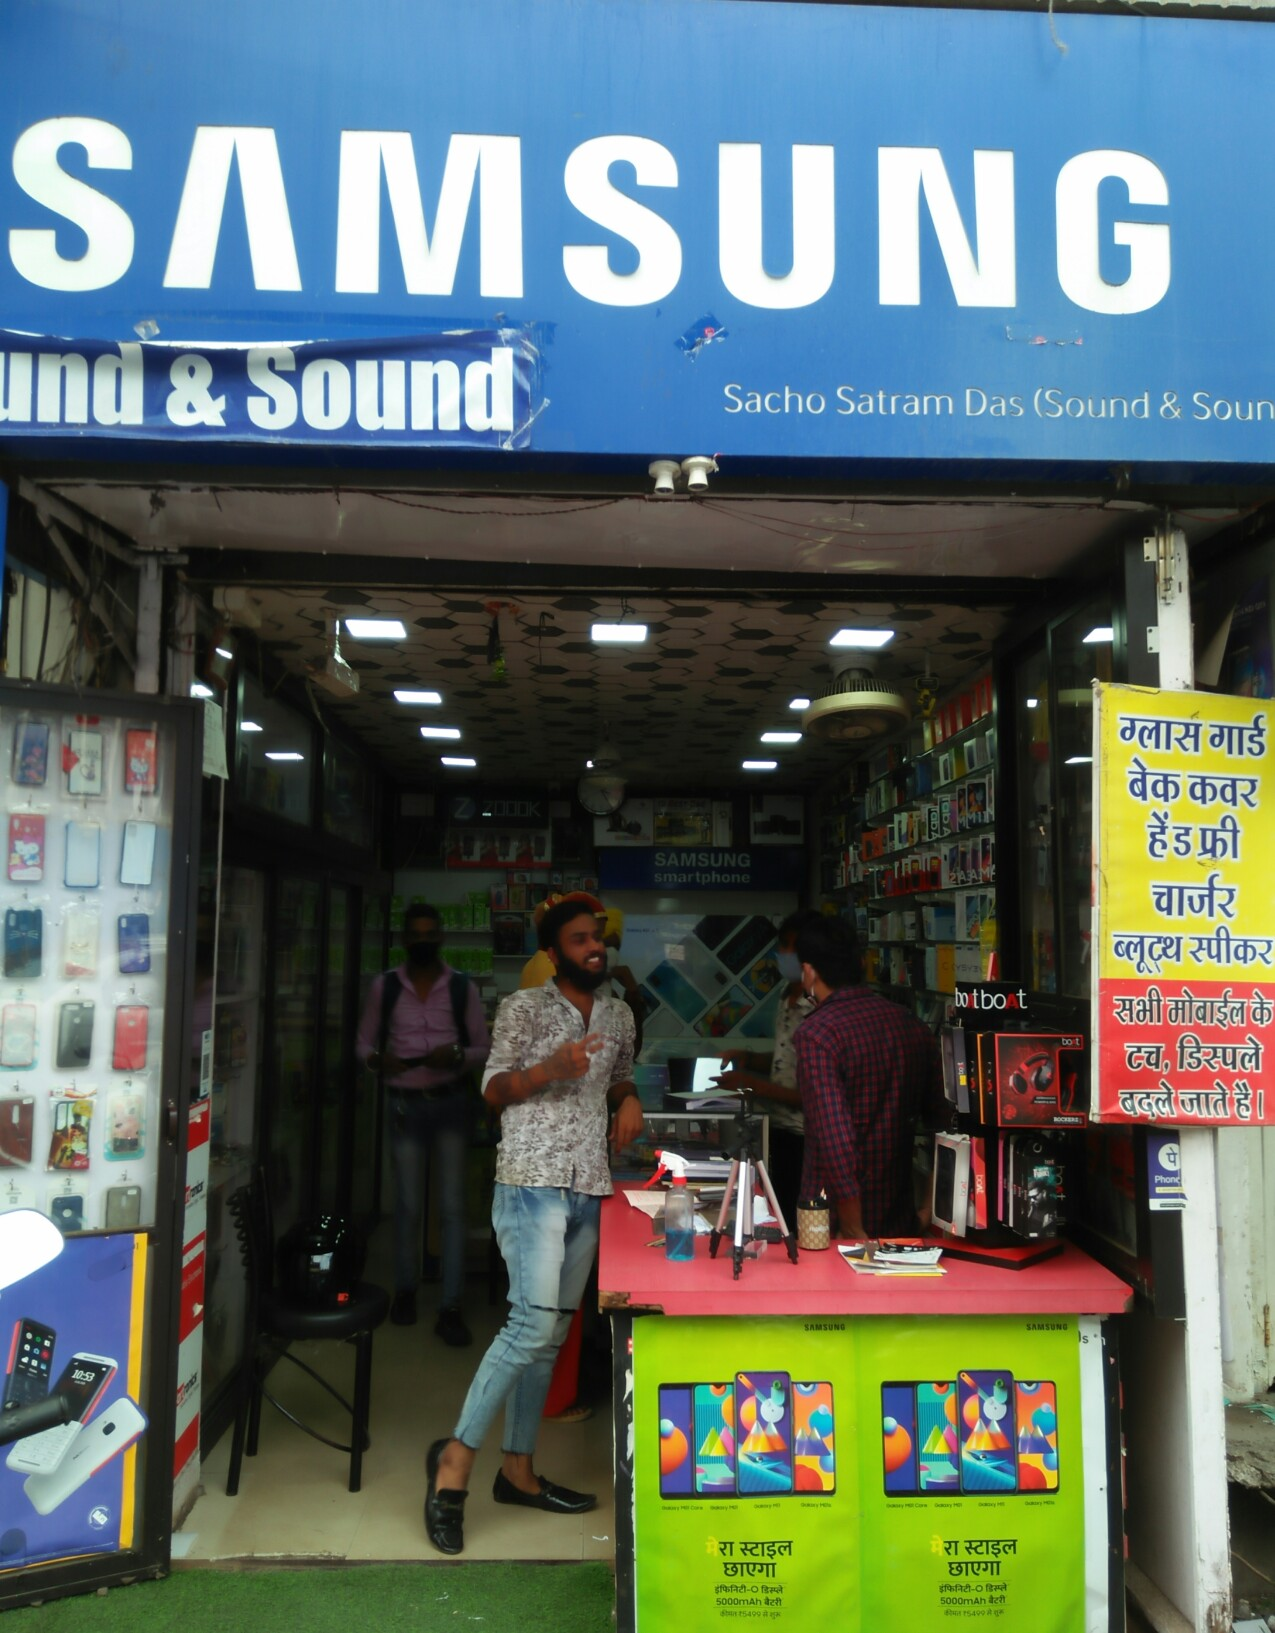 Sound and sound music & mobile